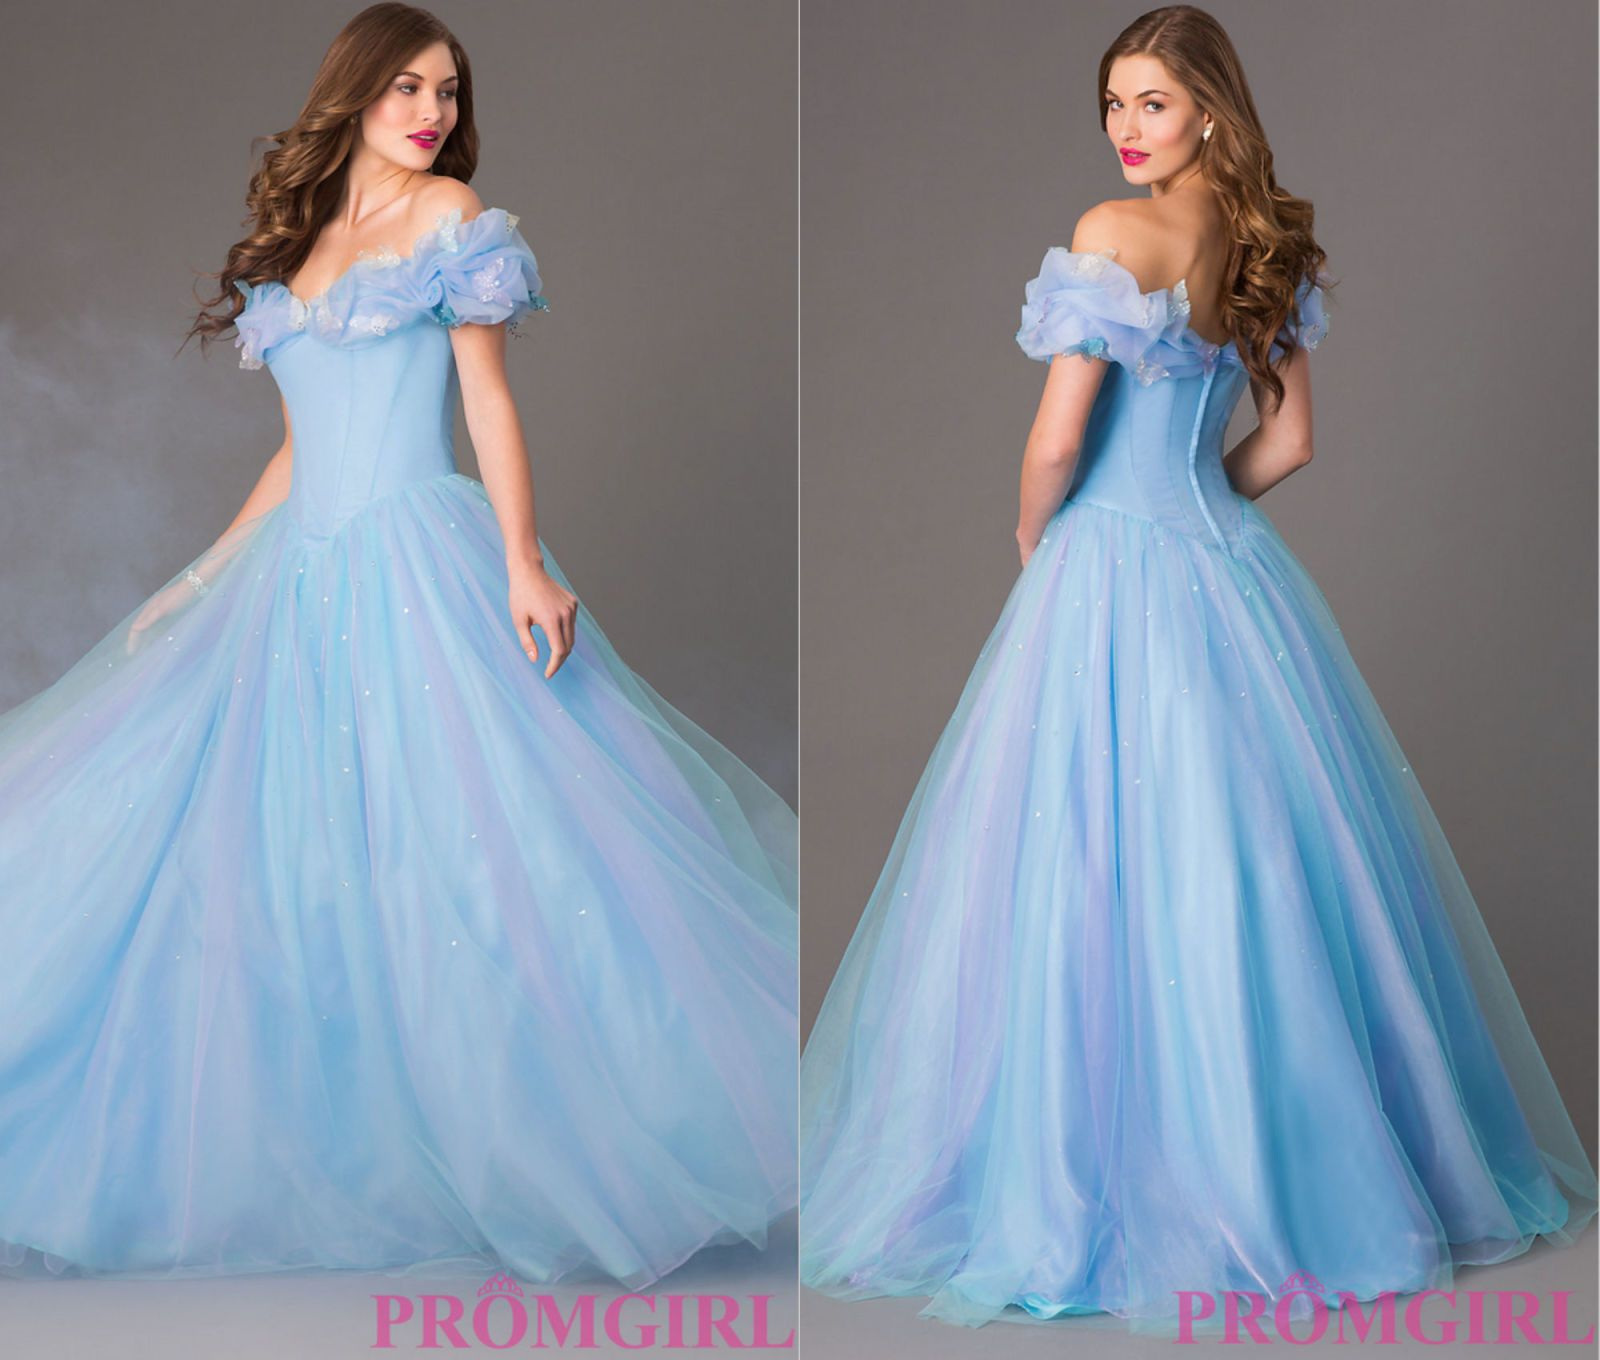 Disney Themed Wedding Dresses: Now You Can Literally Have A Cinderella Moment At Prom